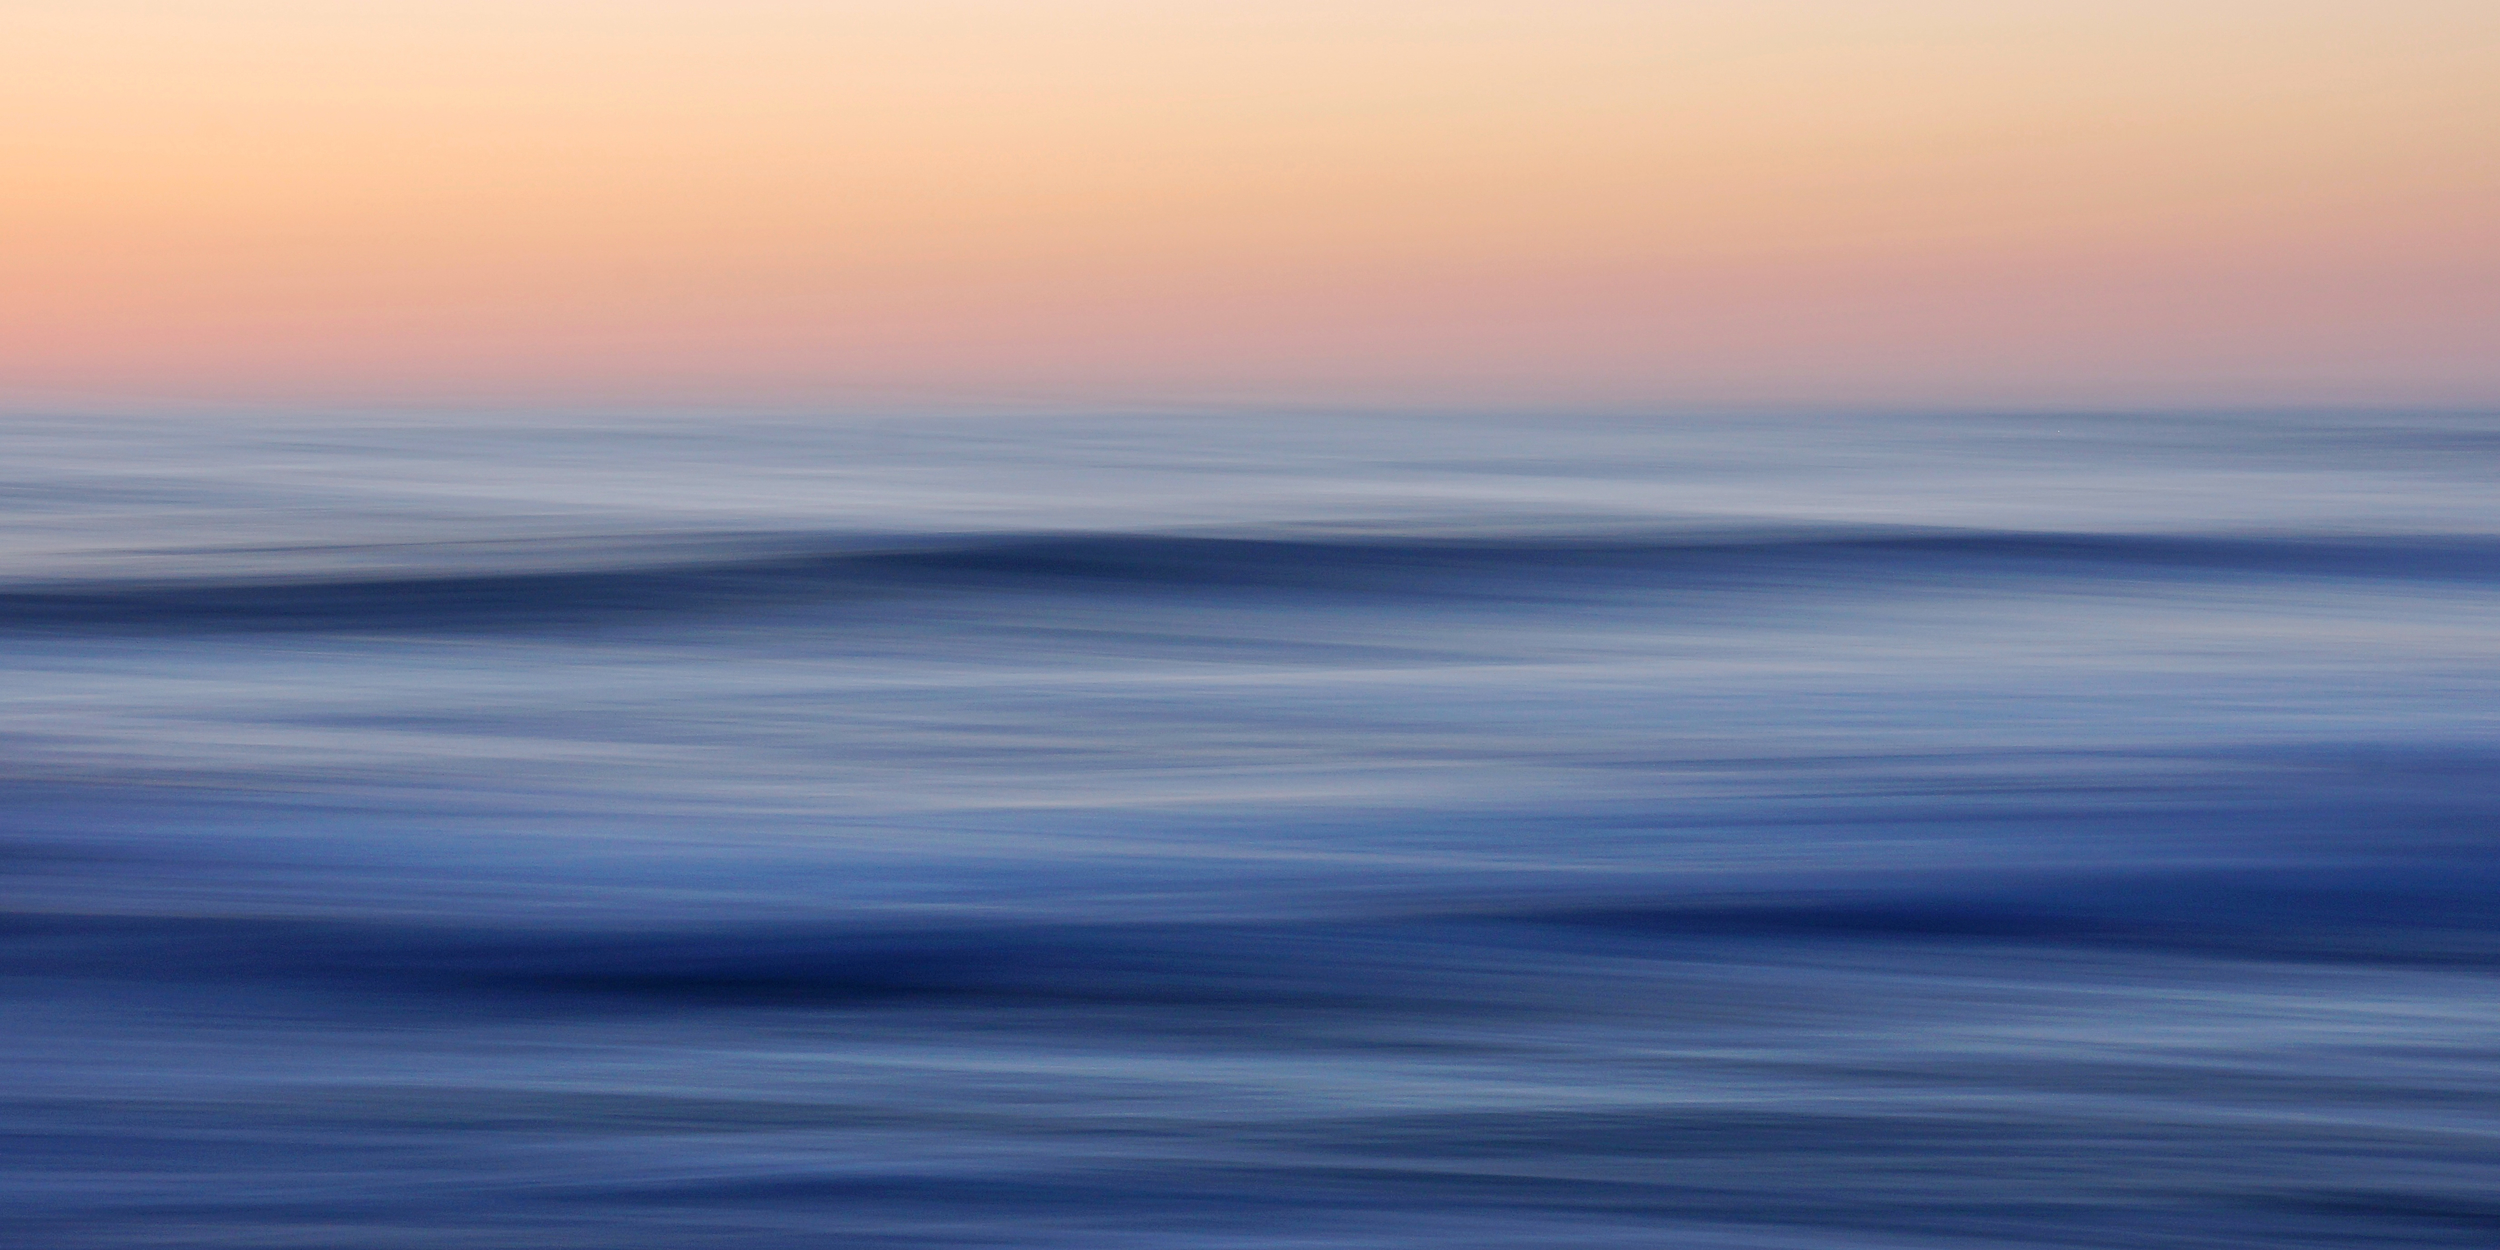 Sine Waves ©2014 beachradish images. All rights reserved.